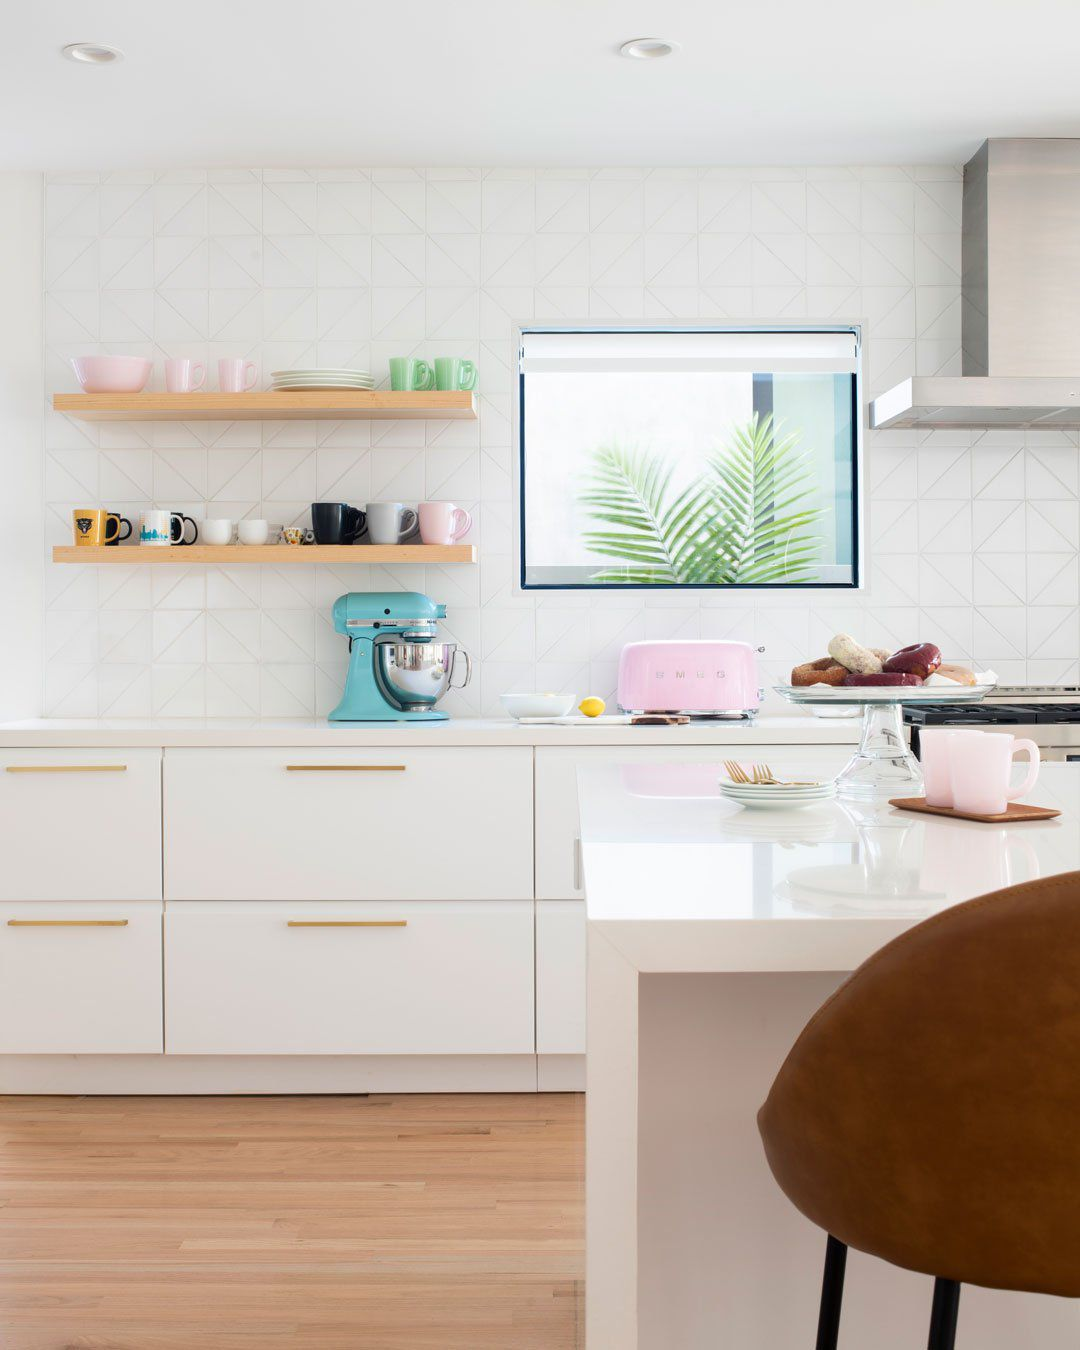 An all-white kitchen with a triangular tile-lined backsplash